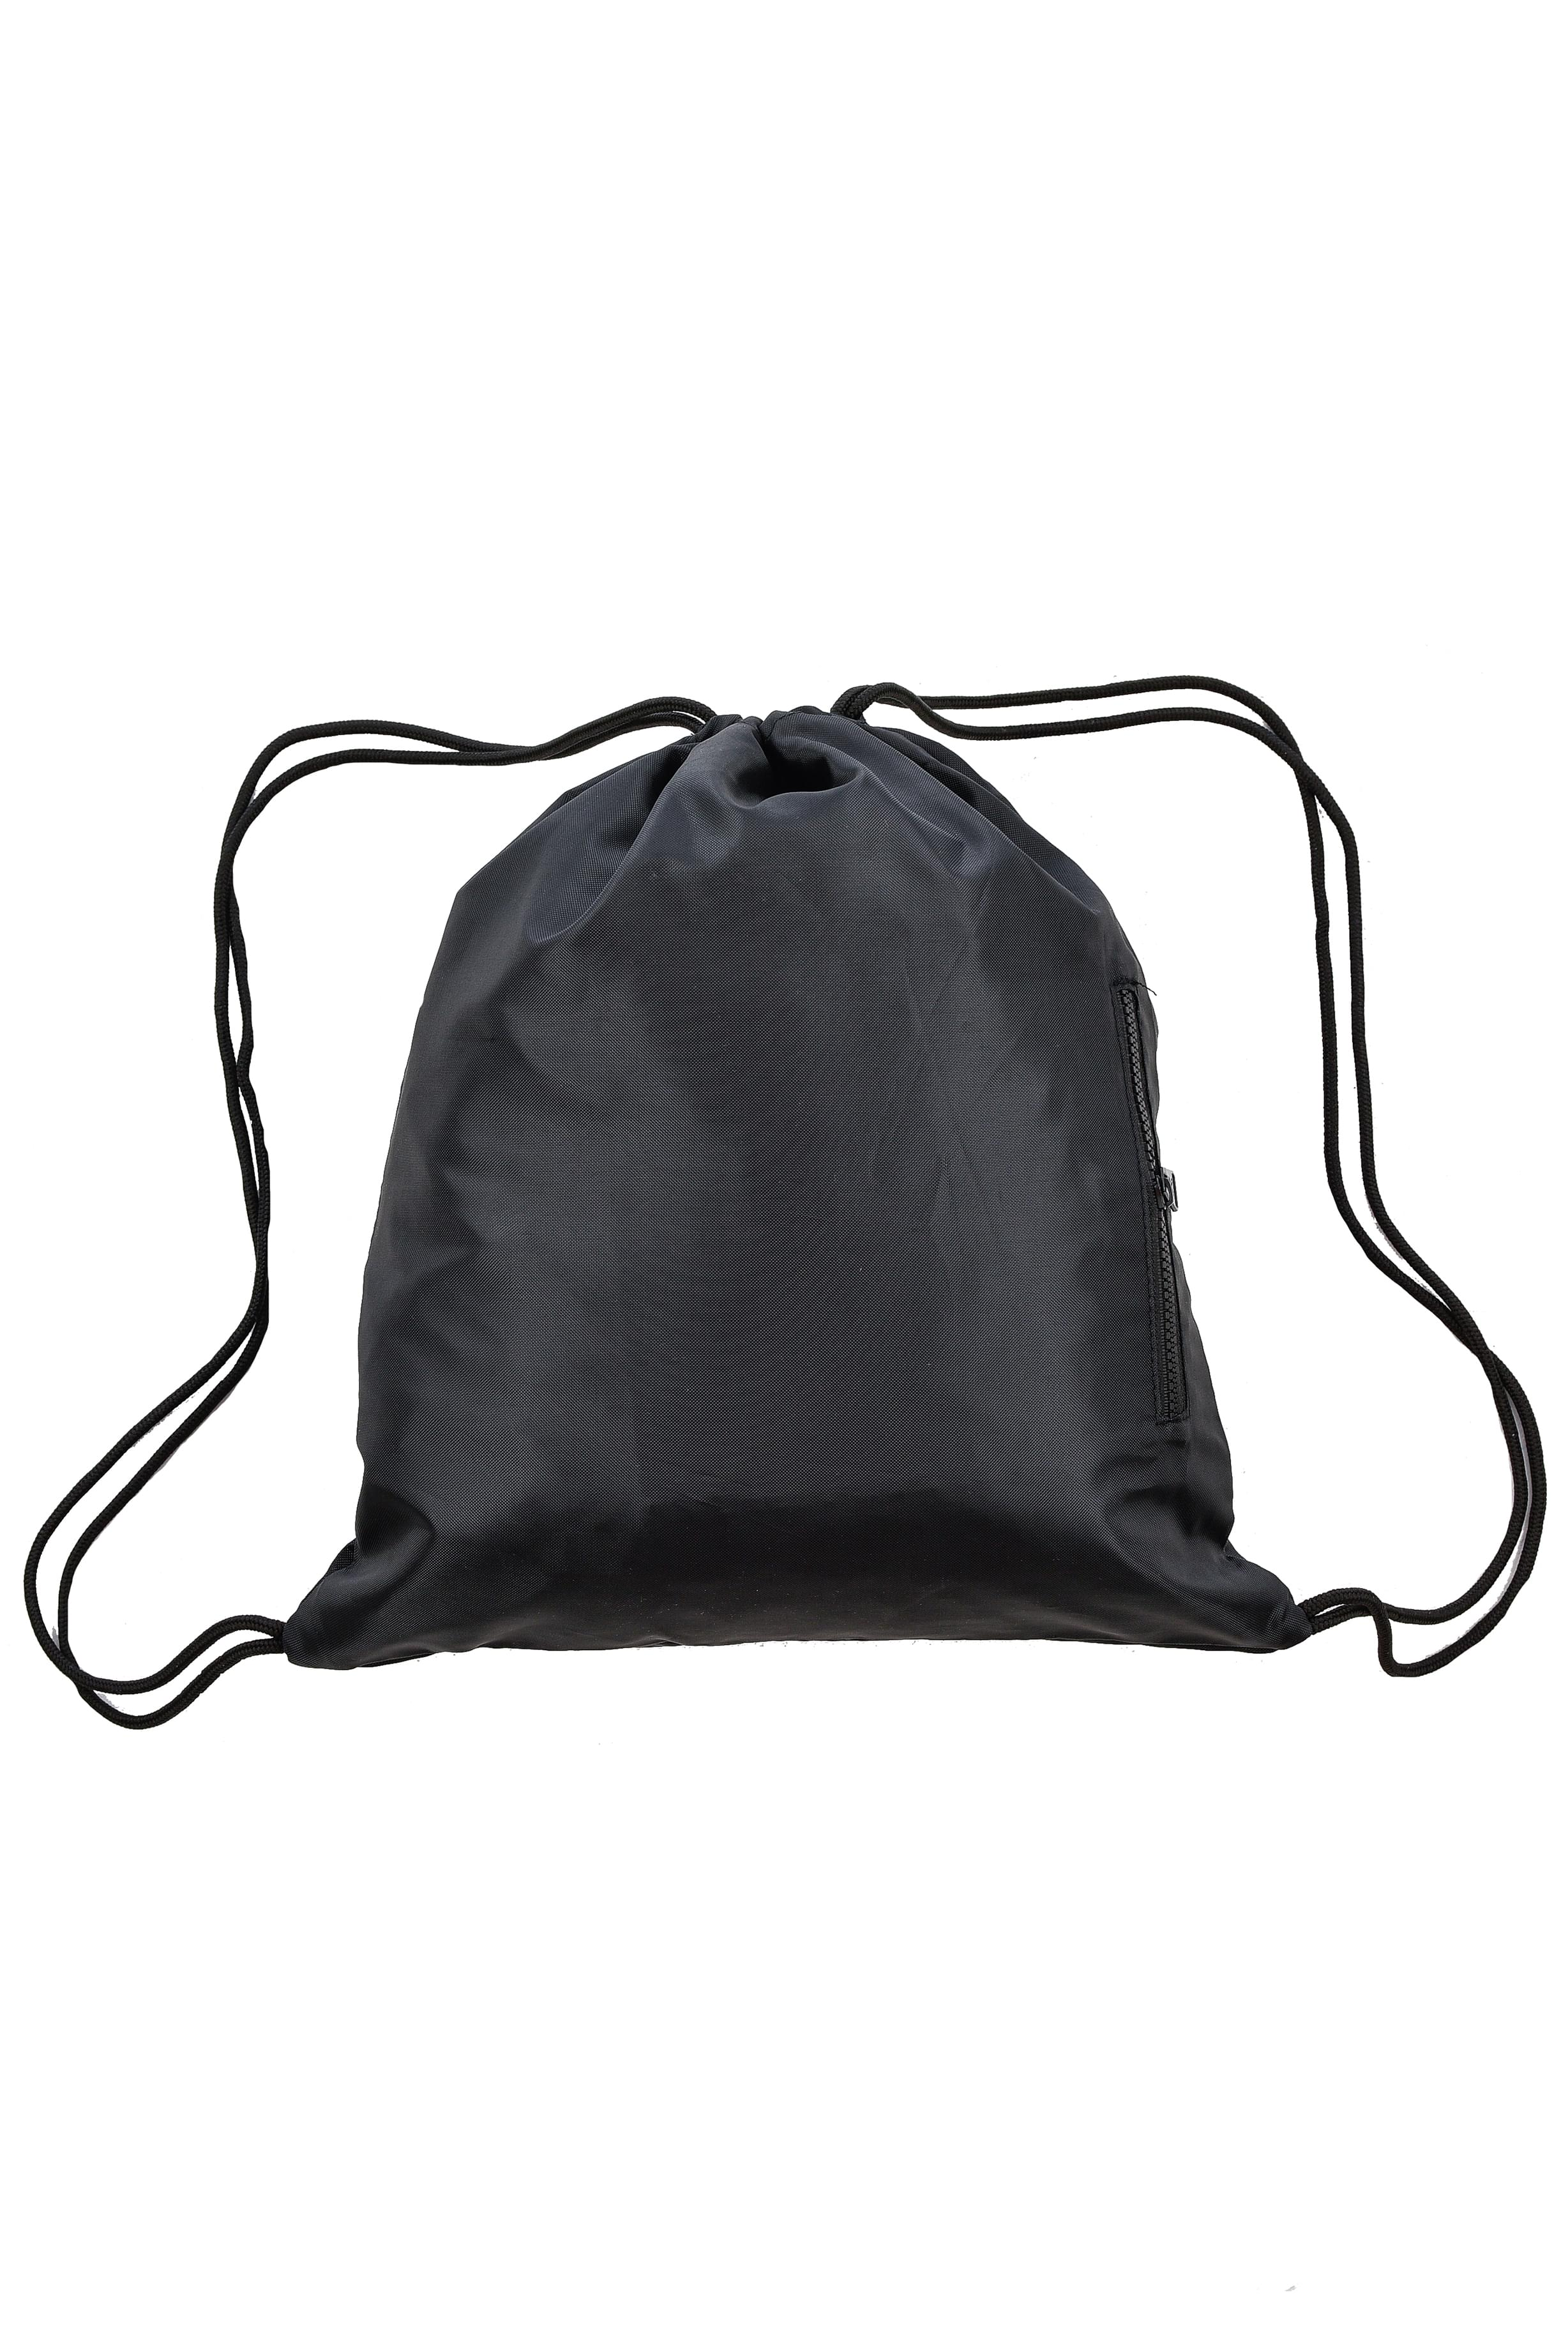 858deee73bbc Dorko   FTF GYMBAG   Bags and accessories   Bags   Tornazsák   Unisex